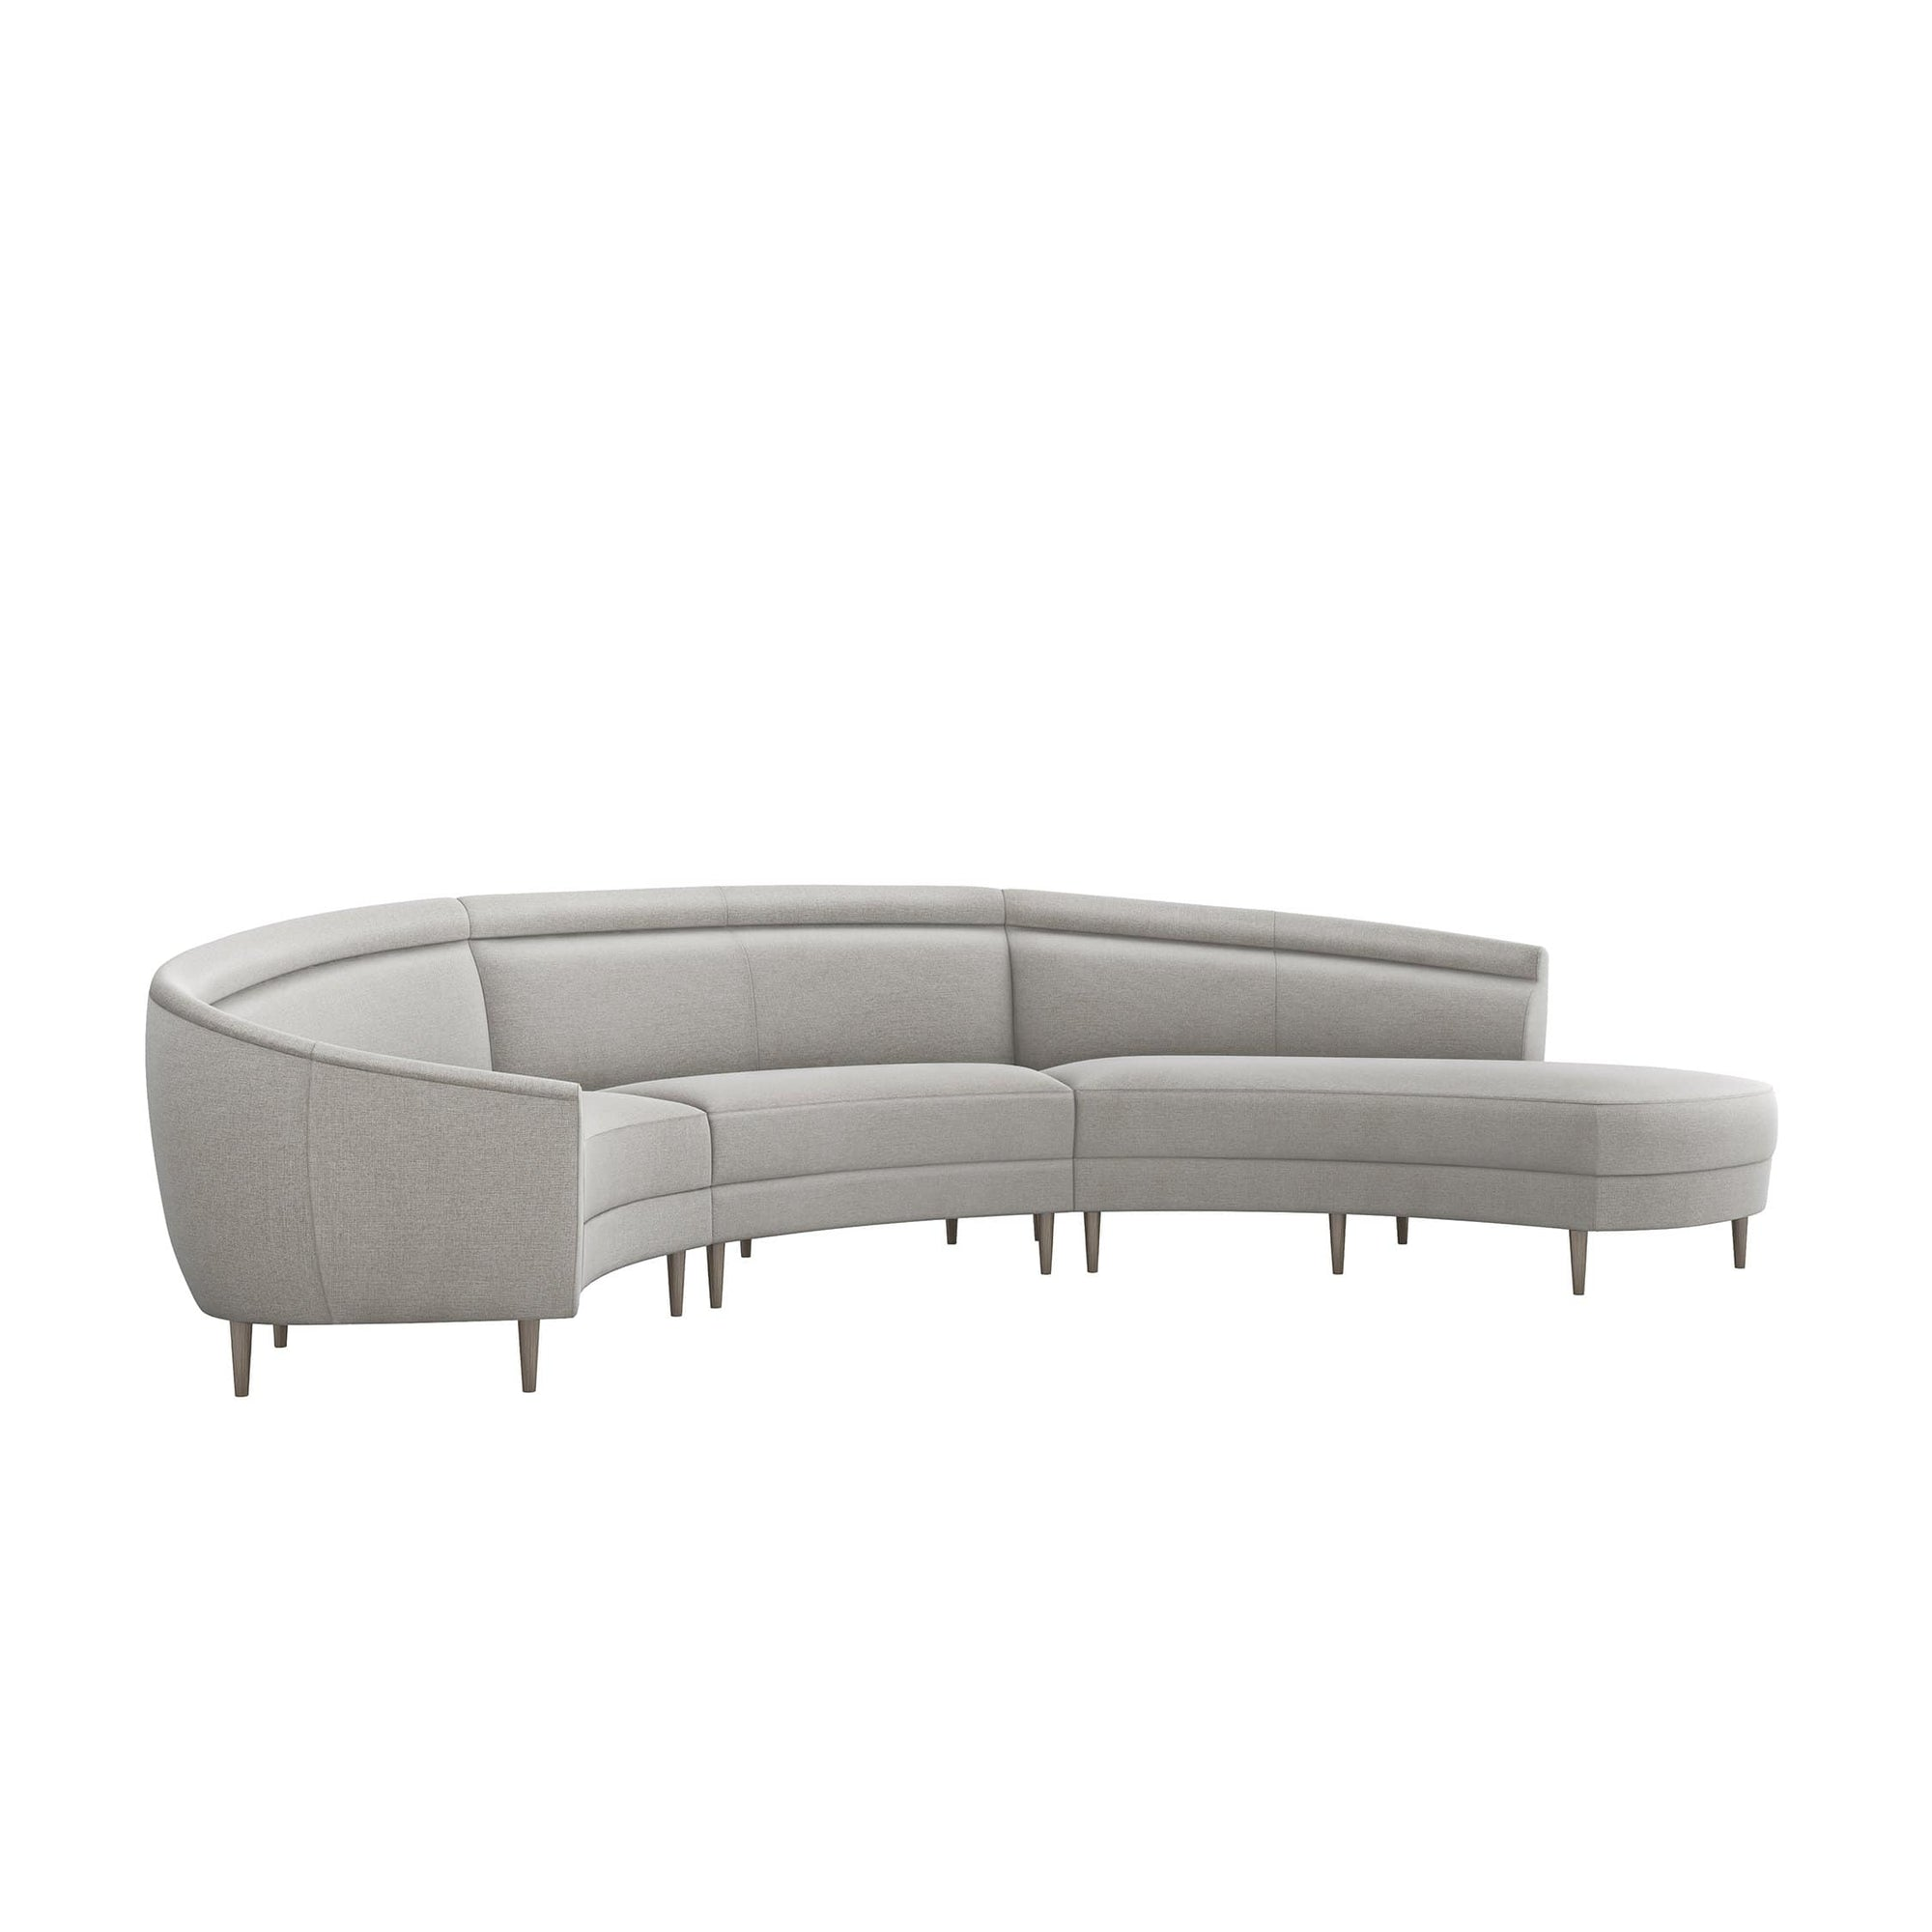 Interlude Home Interlude Home Capri Right Chaise 3 Piece Sectional - Dark Gray 199012-6